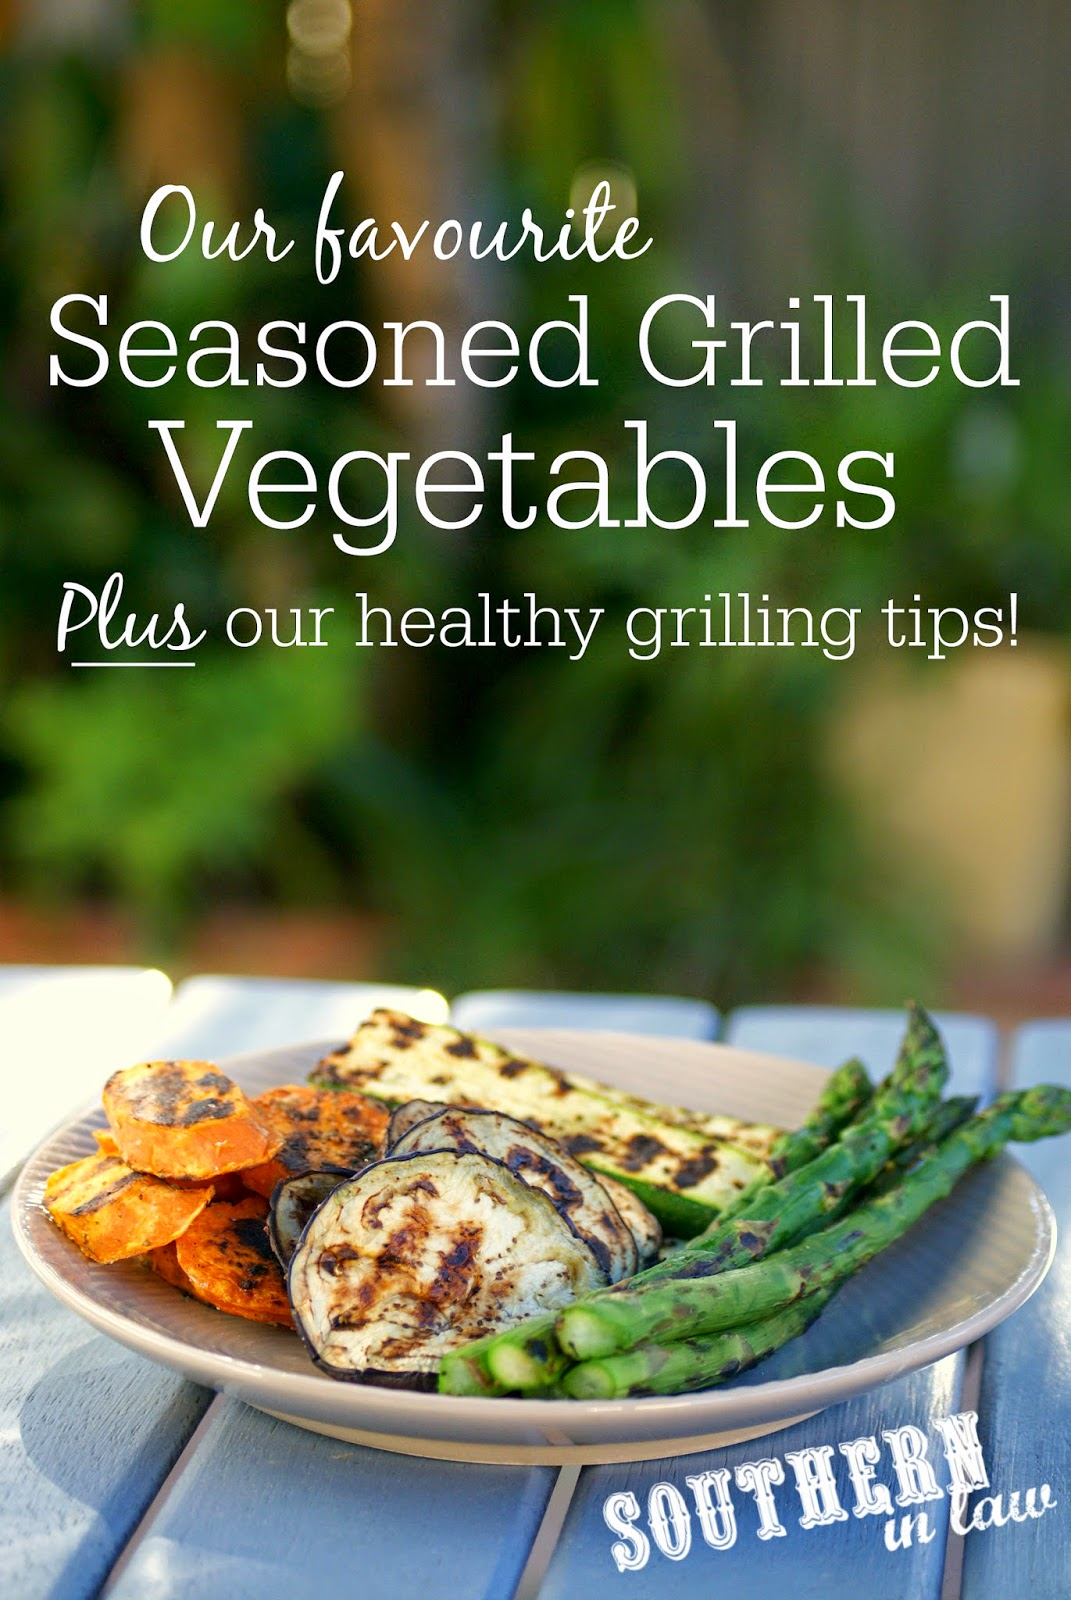 Our favourite Seasoned Grilled Vegetables Recipe plus Healthy Grilling Tips